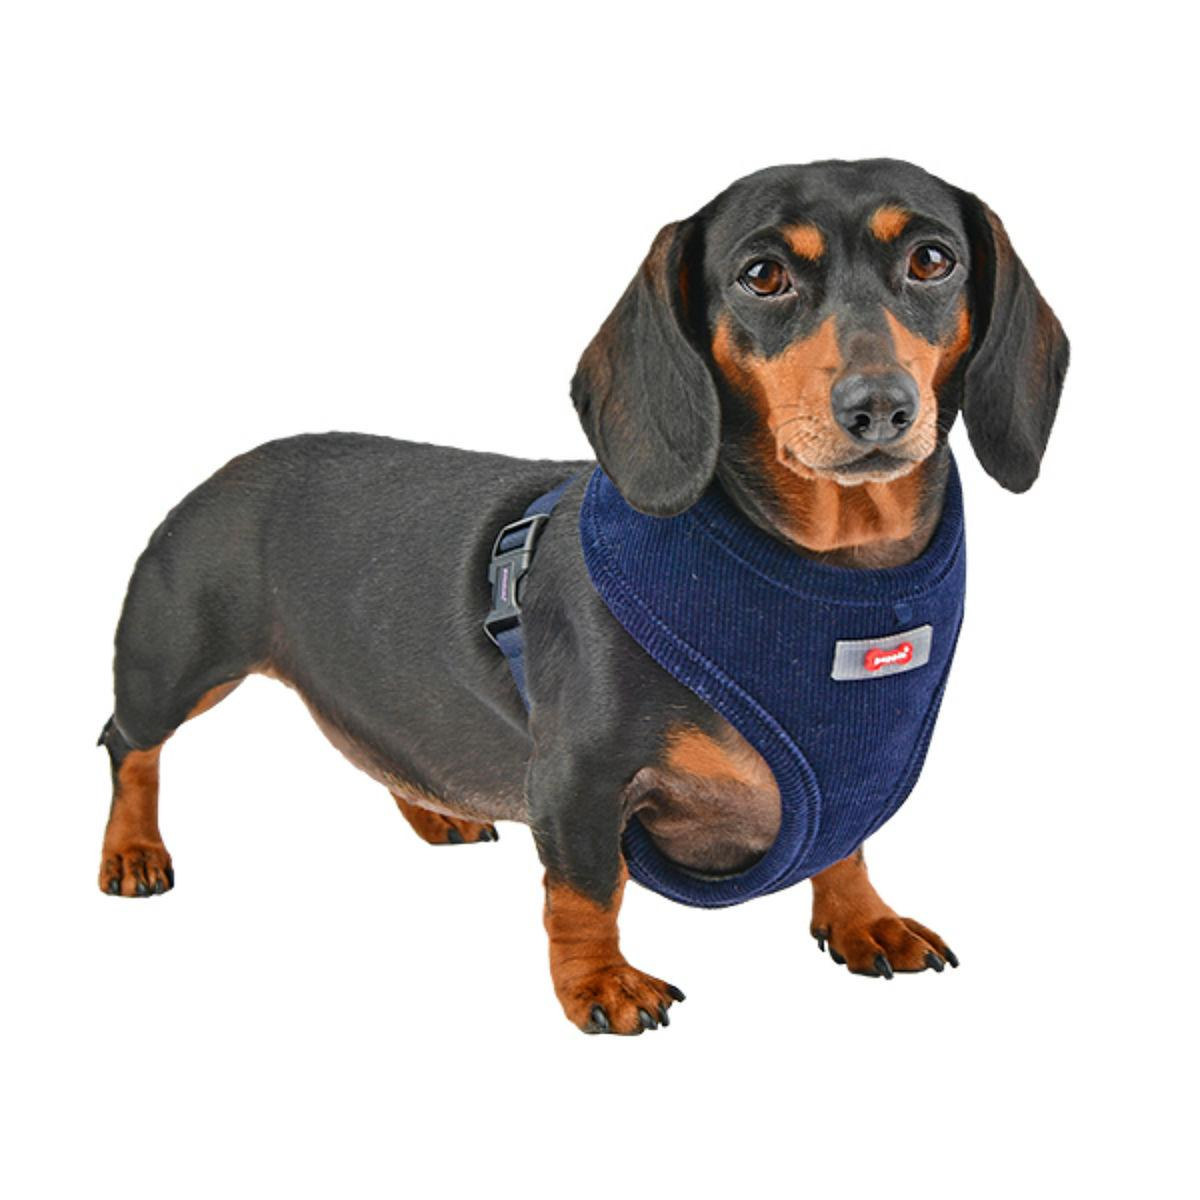 Classy Basic Style Dog Harness By Puppia - Navy